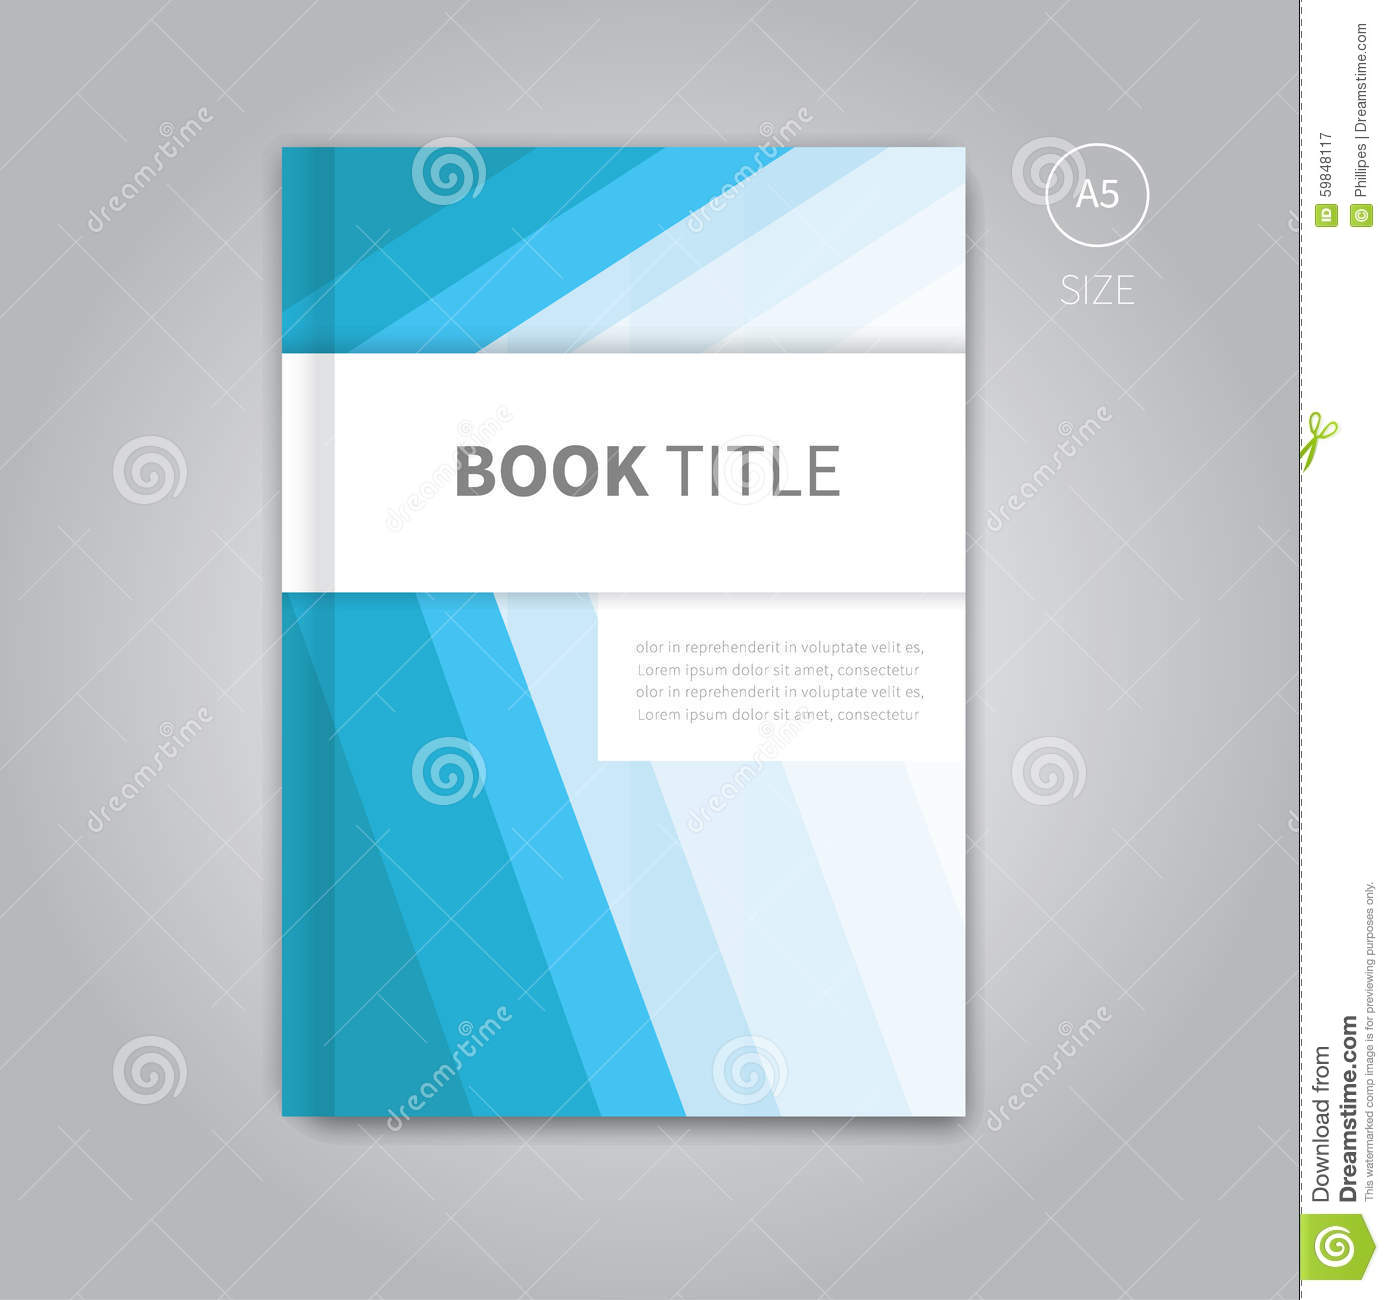 free book cover design template koni polycode co